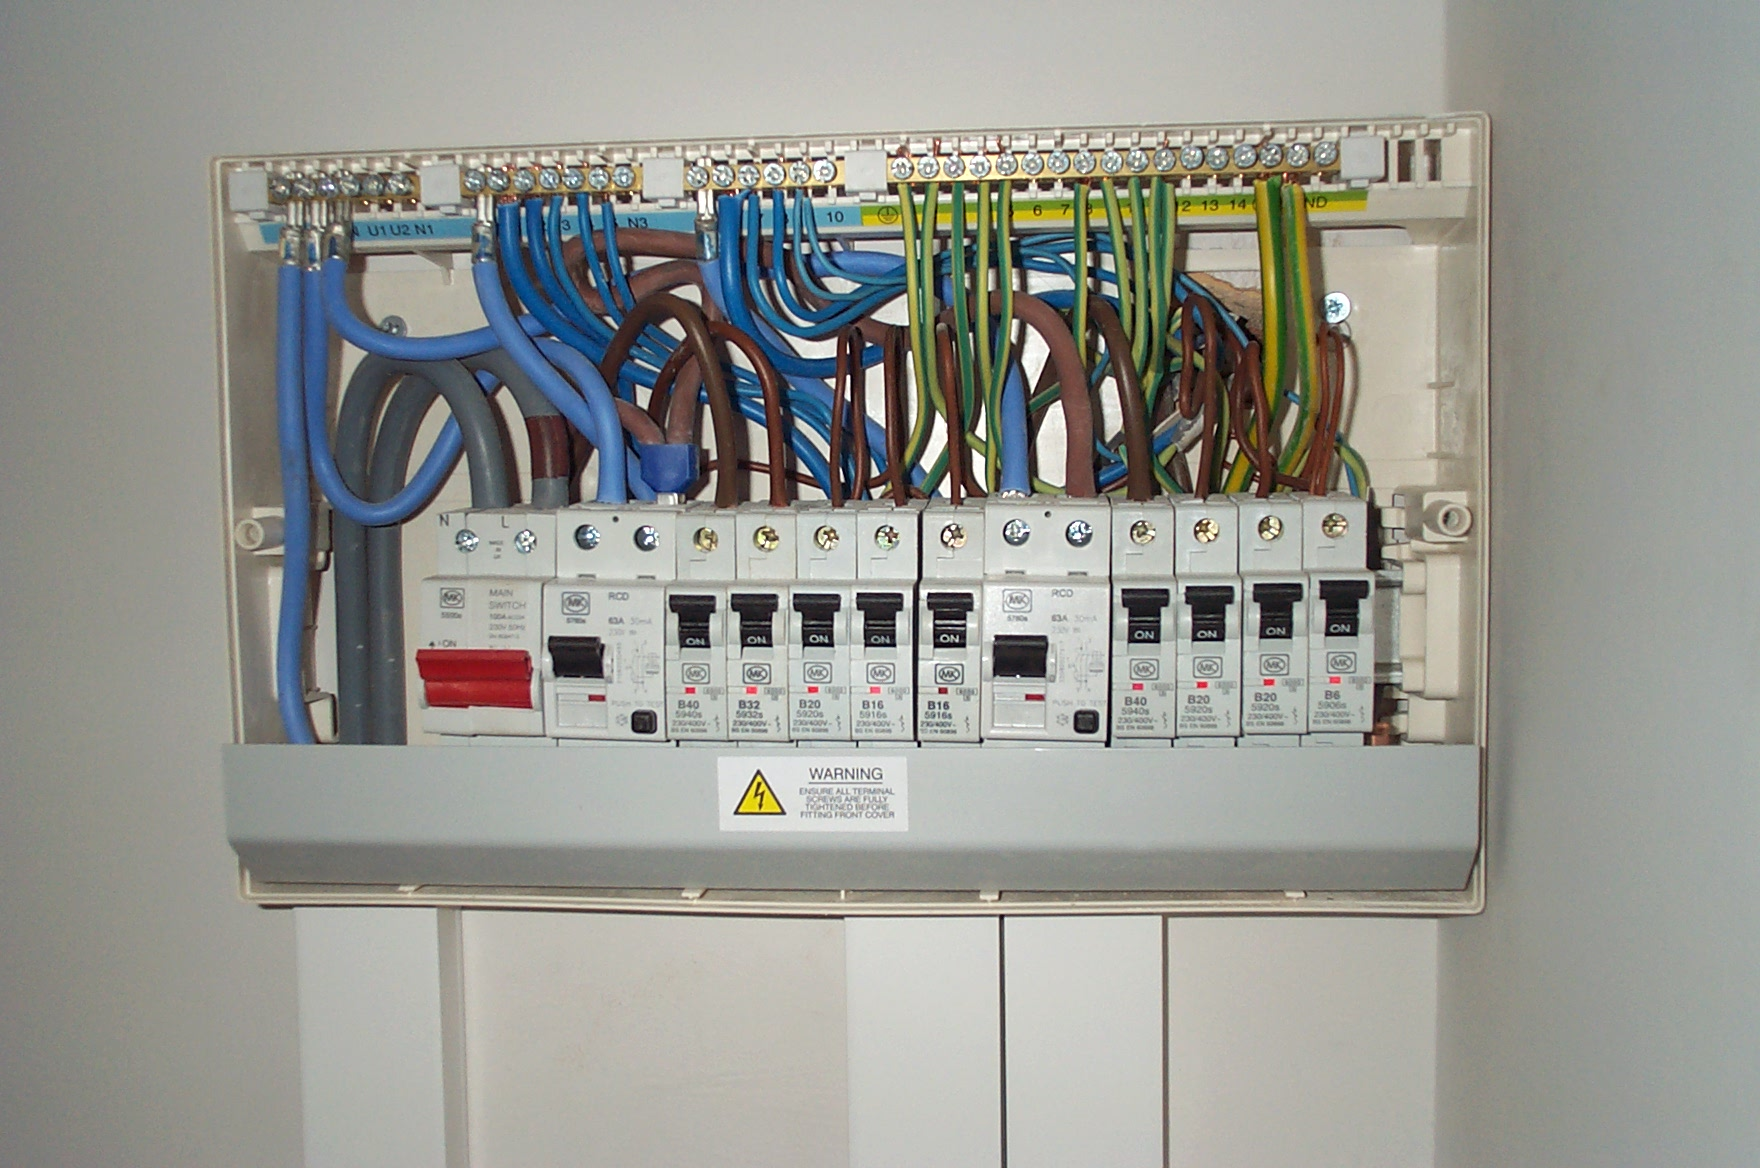 Wiring An Outbuilding likewise 801266bxw as well 2012 Toyota Corolla Fuse Panel together with 7C 7C  ultimatehandyman co uk 7Csplit load consumer unit together with S1699251. on home fuse panel diagram